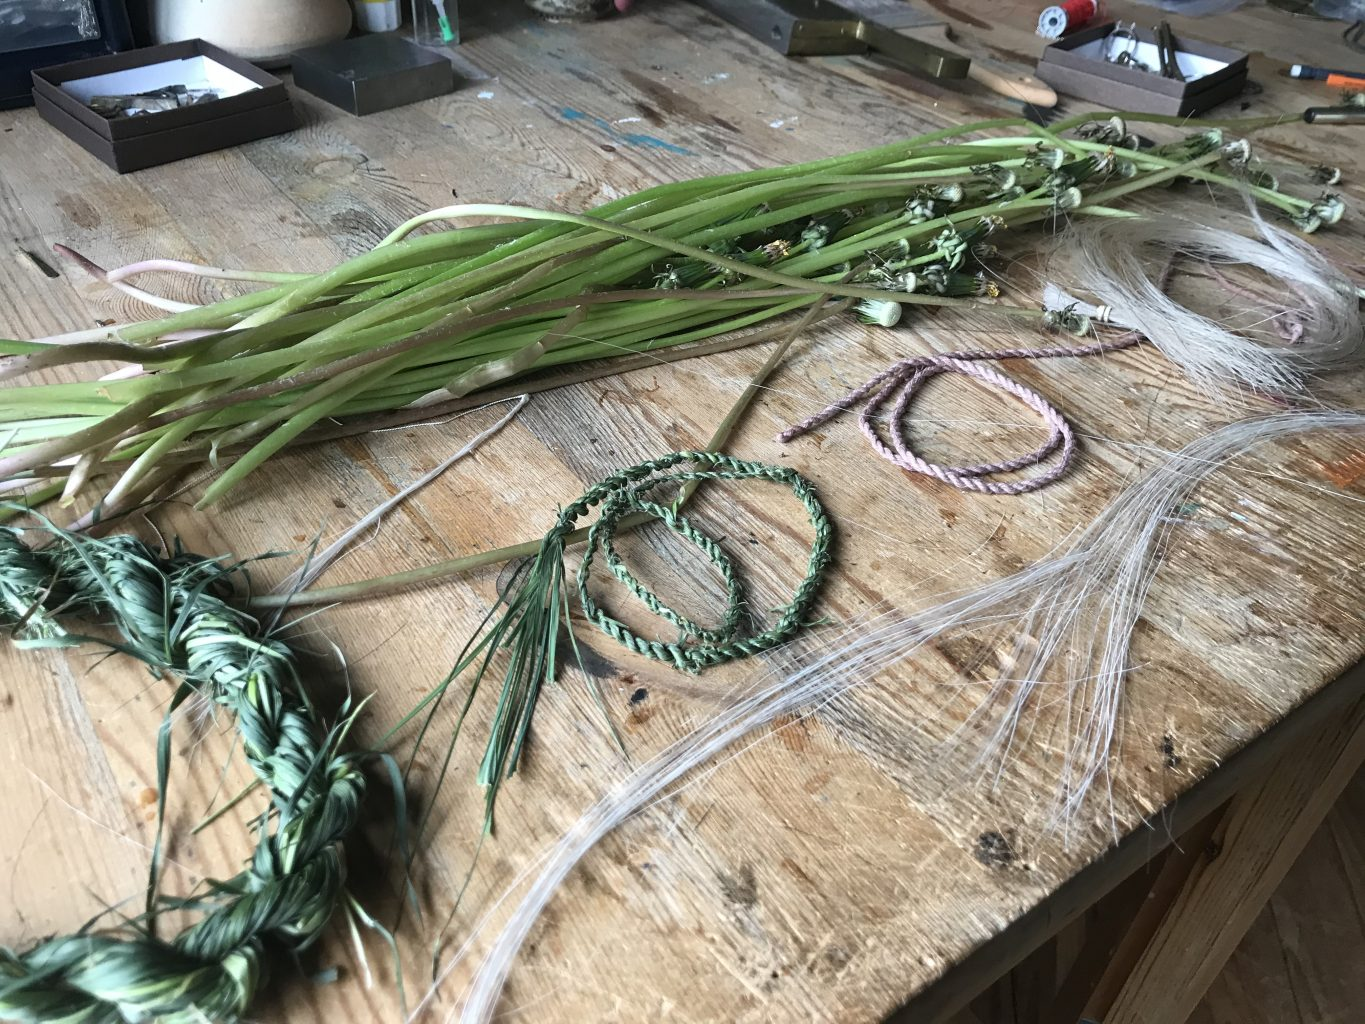 Small piles of picked dandelion stems and horsehair with rope handmade from grass, dandelions, horsehair and lichen on a workbench